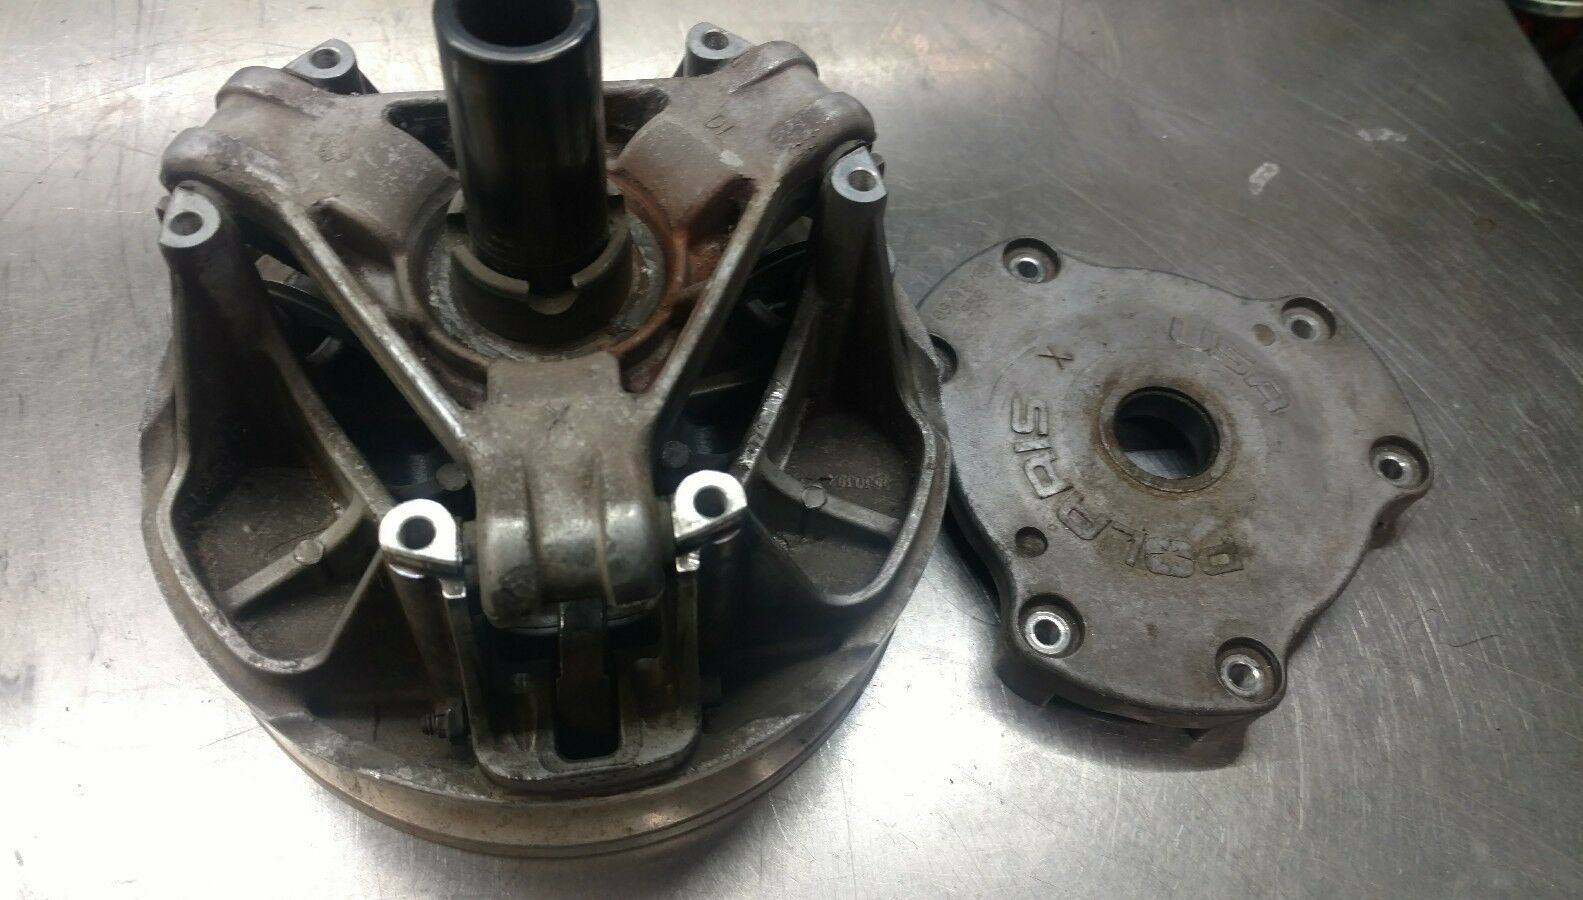 Polaris snowmobile parts clutch (parts only)